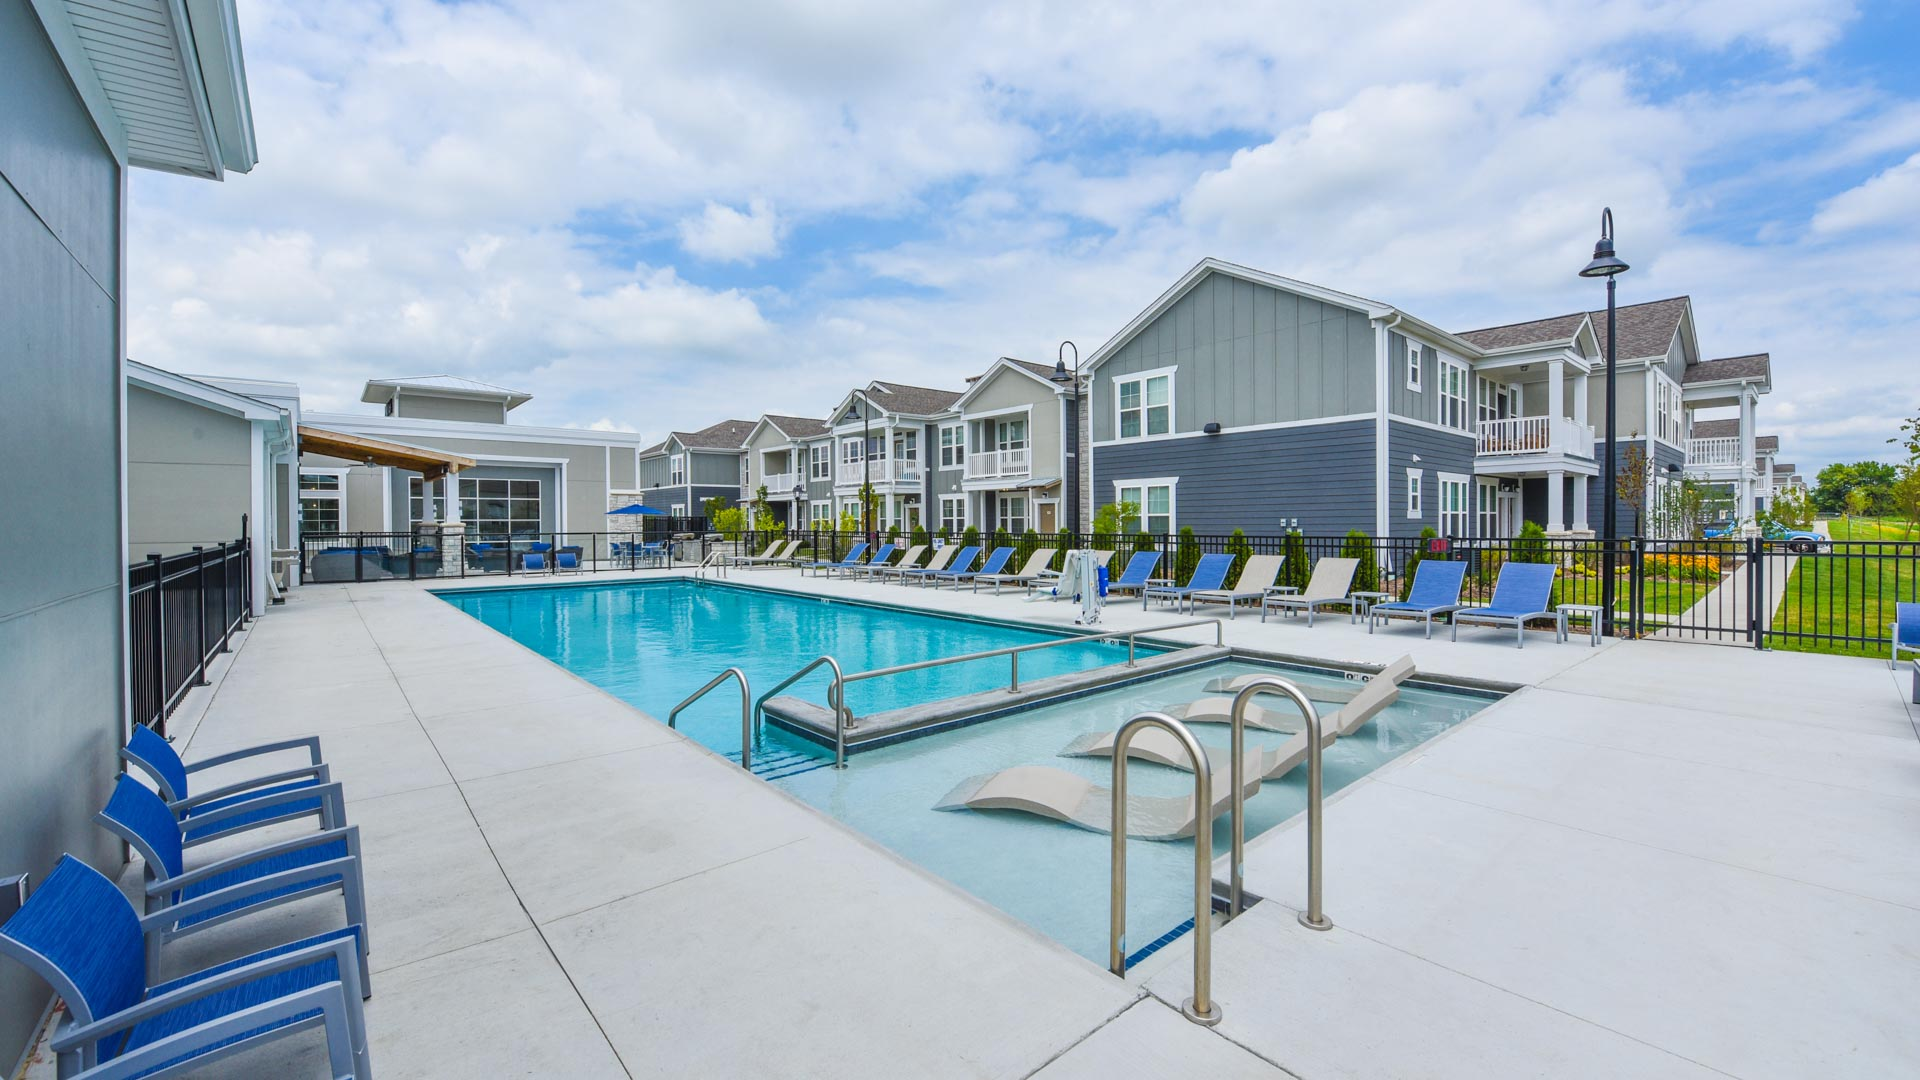 Pool at Springs at Orchard Road in North Aurora, IL